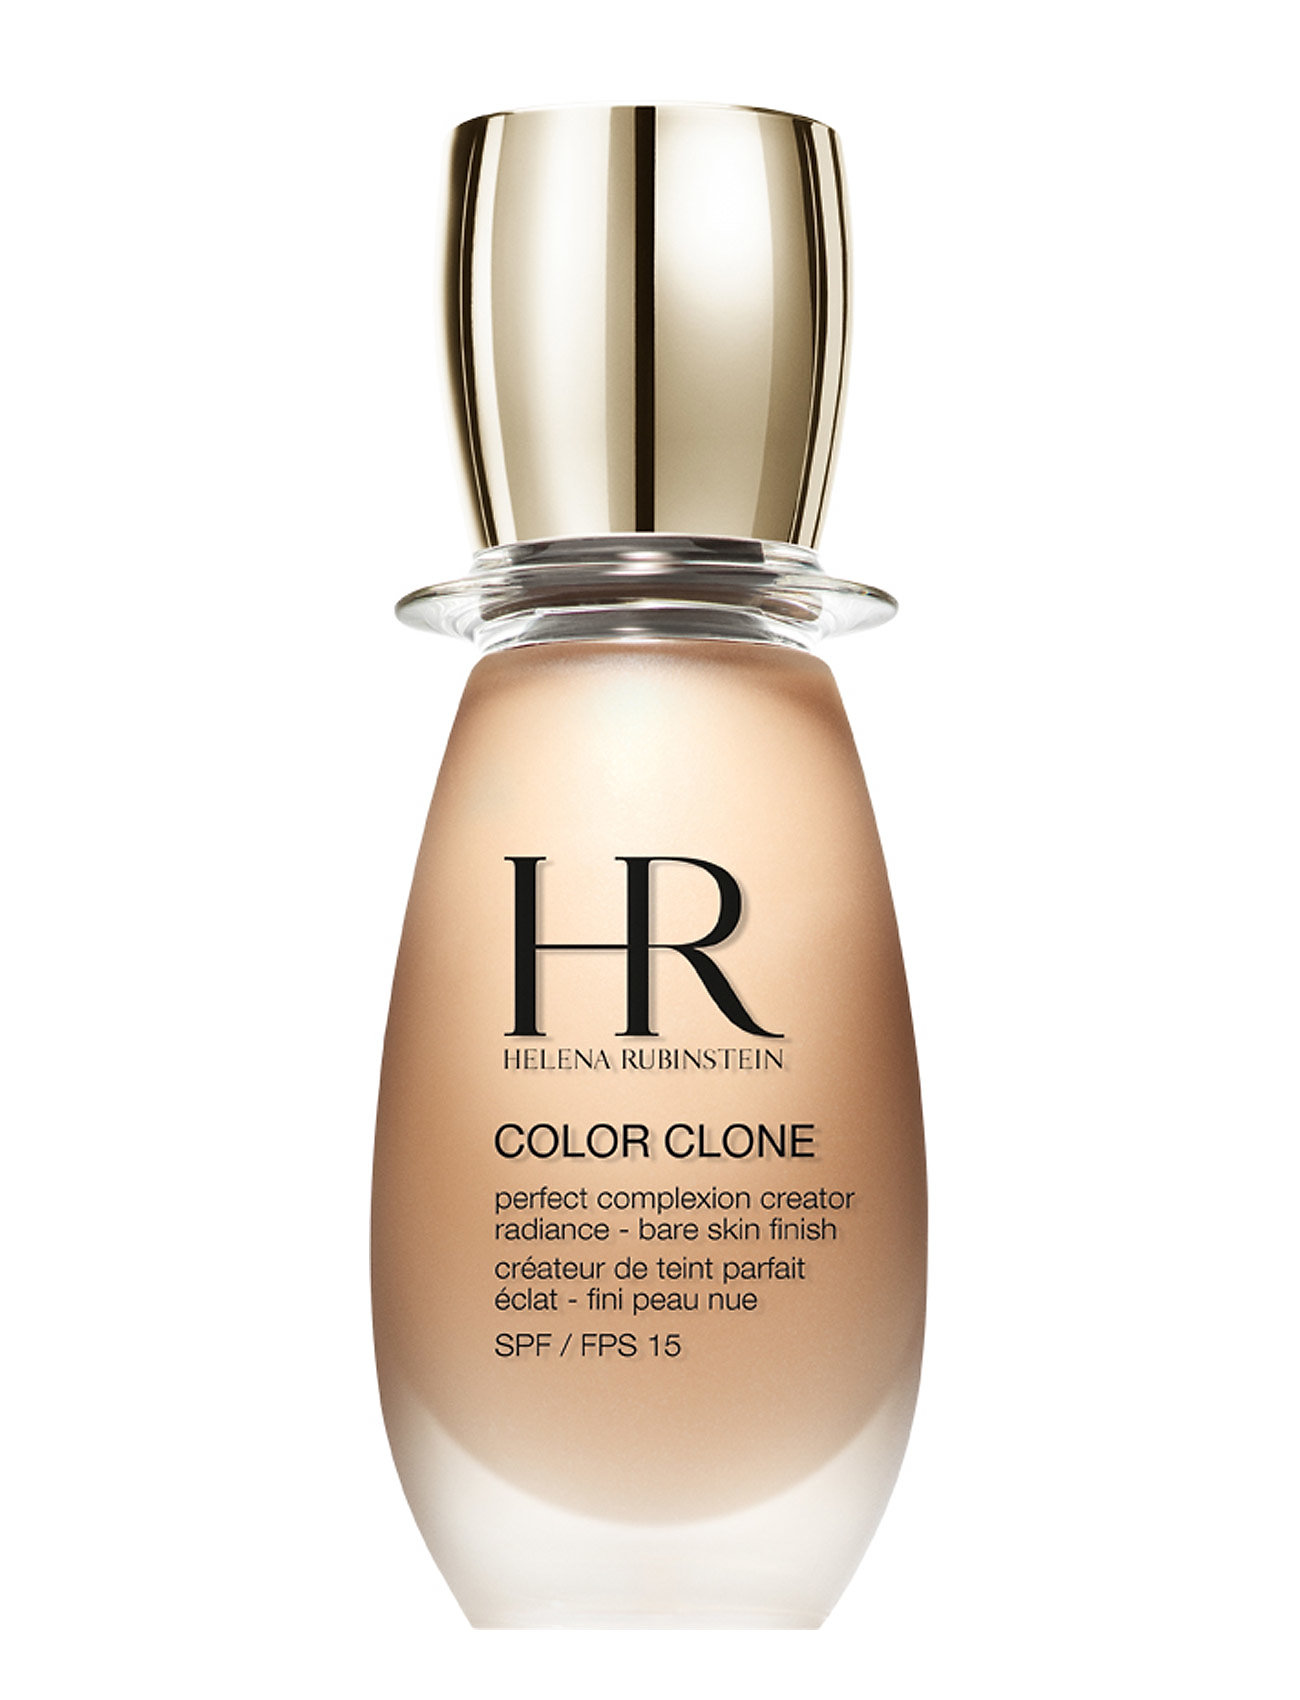 Image of Color Cl Shell 13 Foundation Makeup Helena Rubinstein (3345419551)